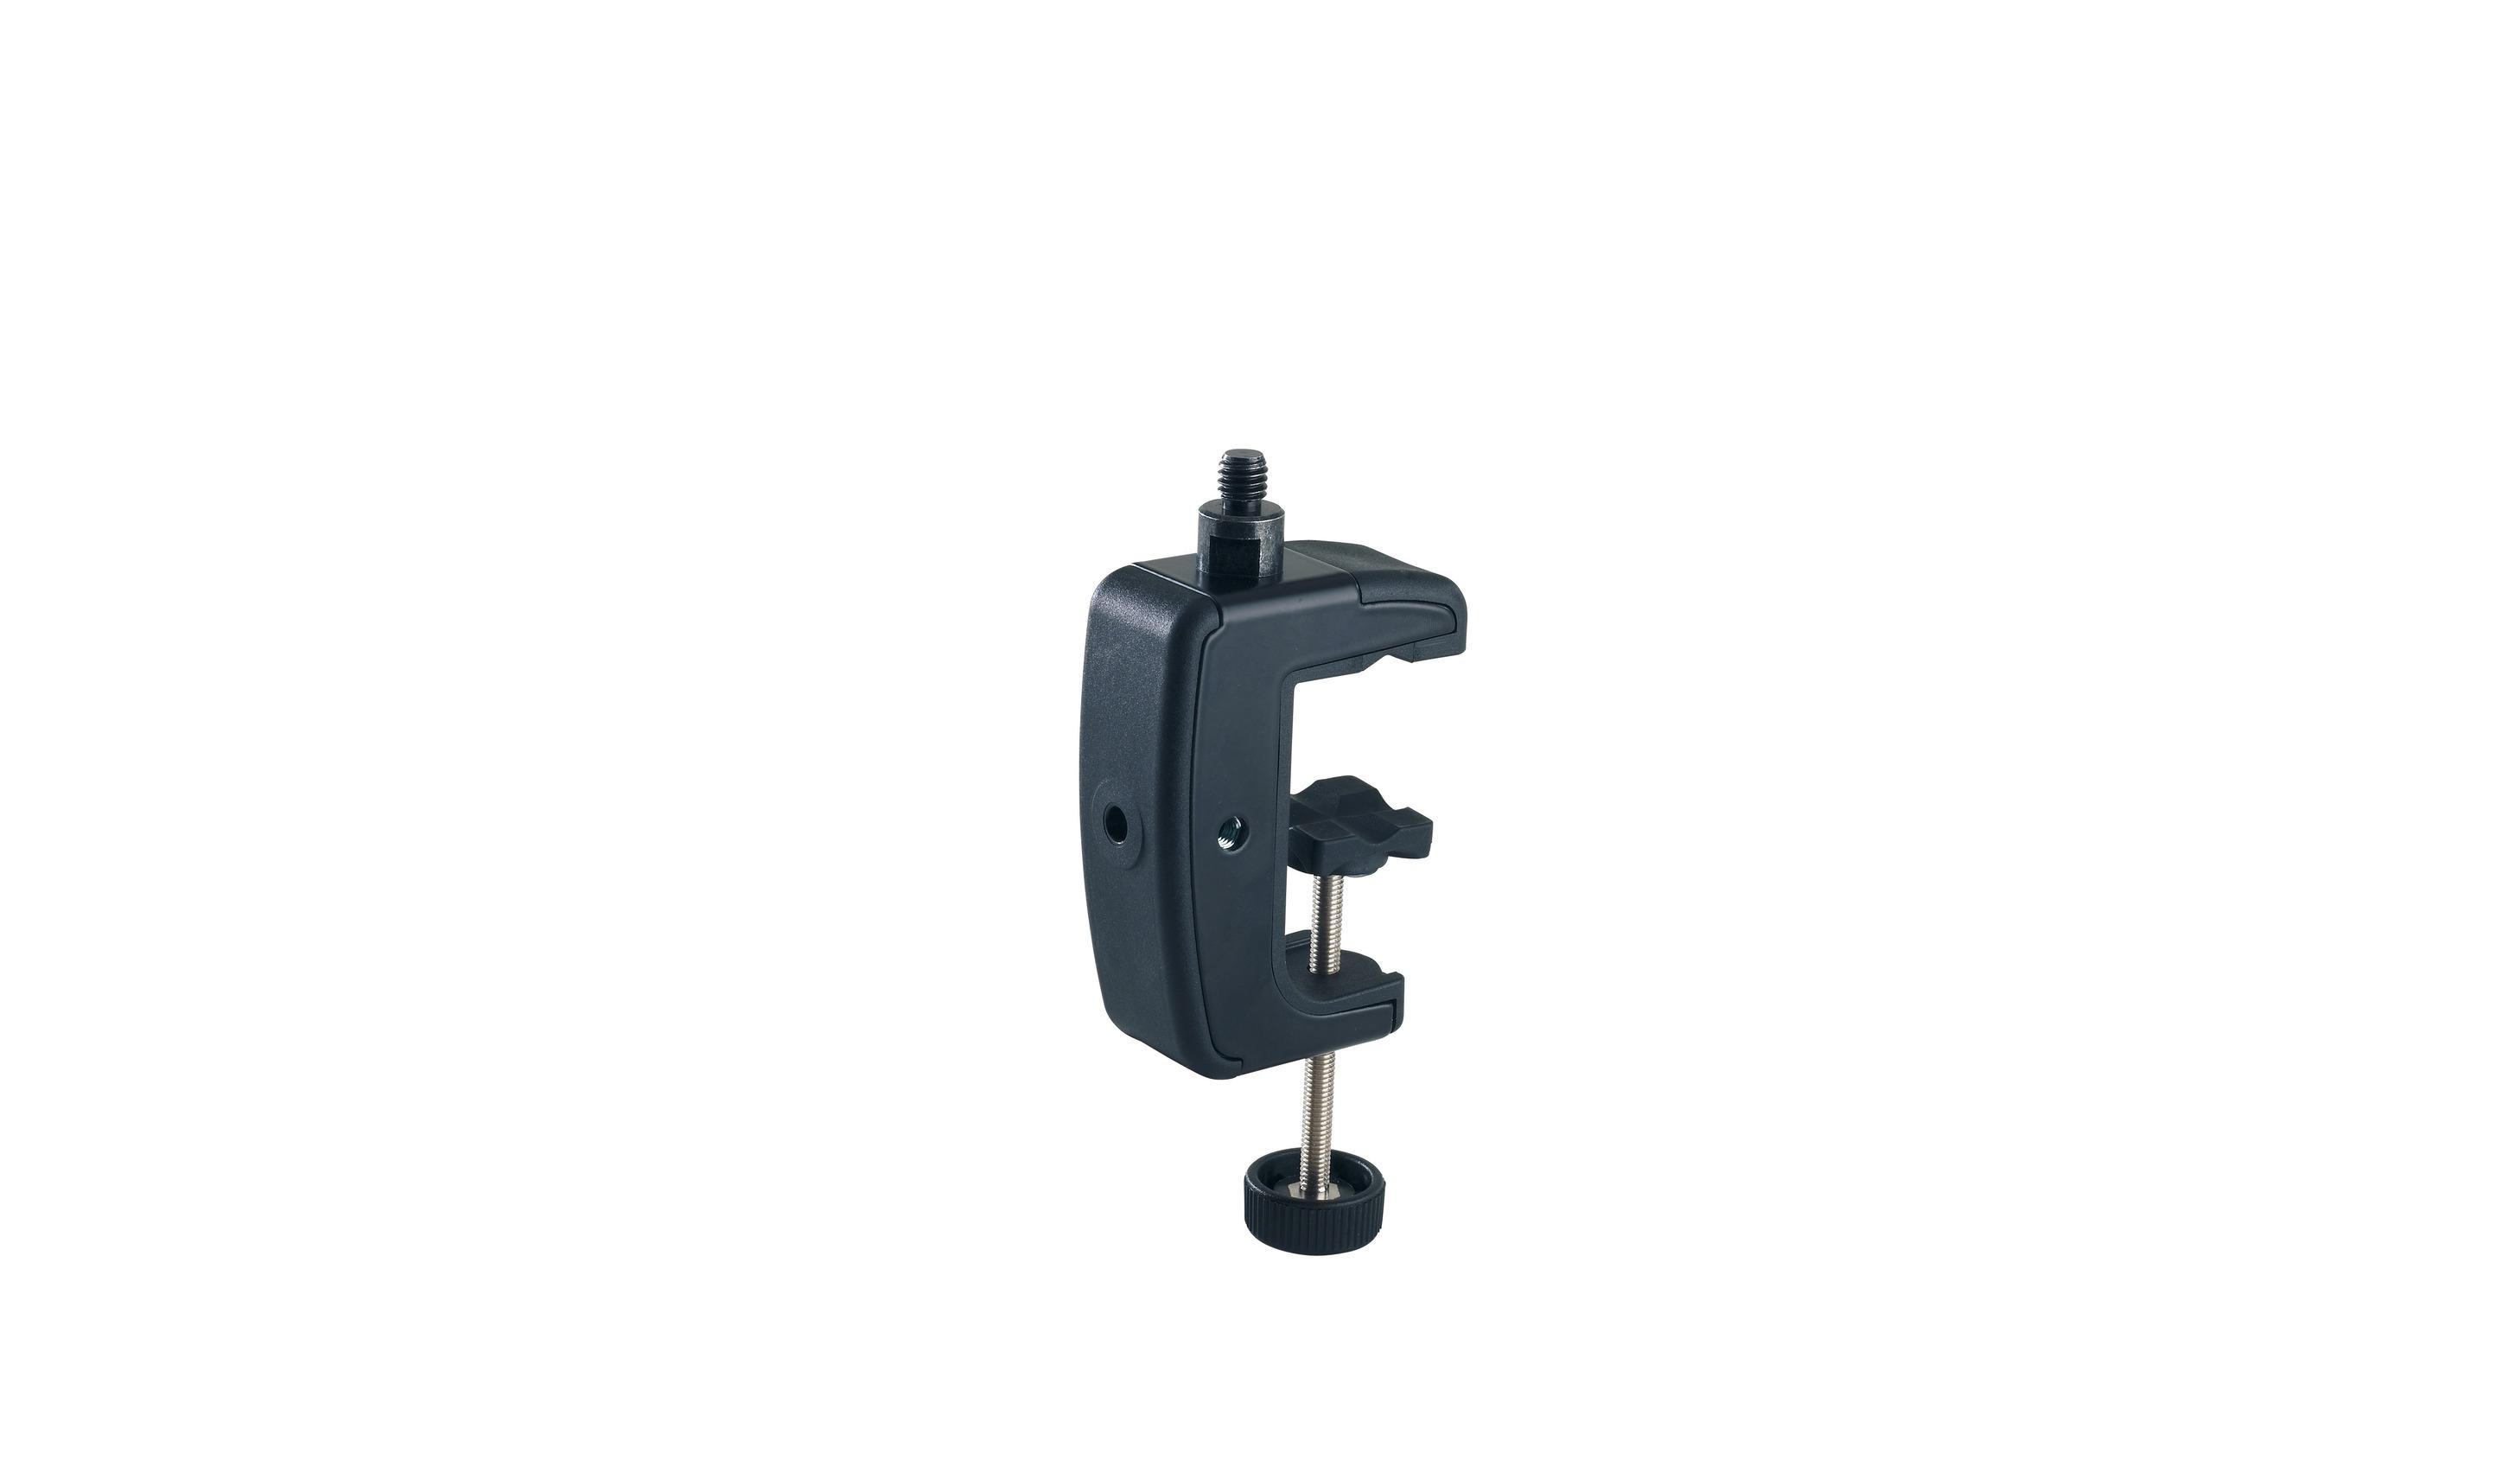 K&M 23720 TABLE CLAMP black 3/8